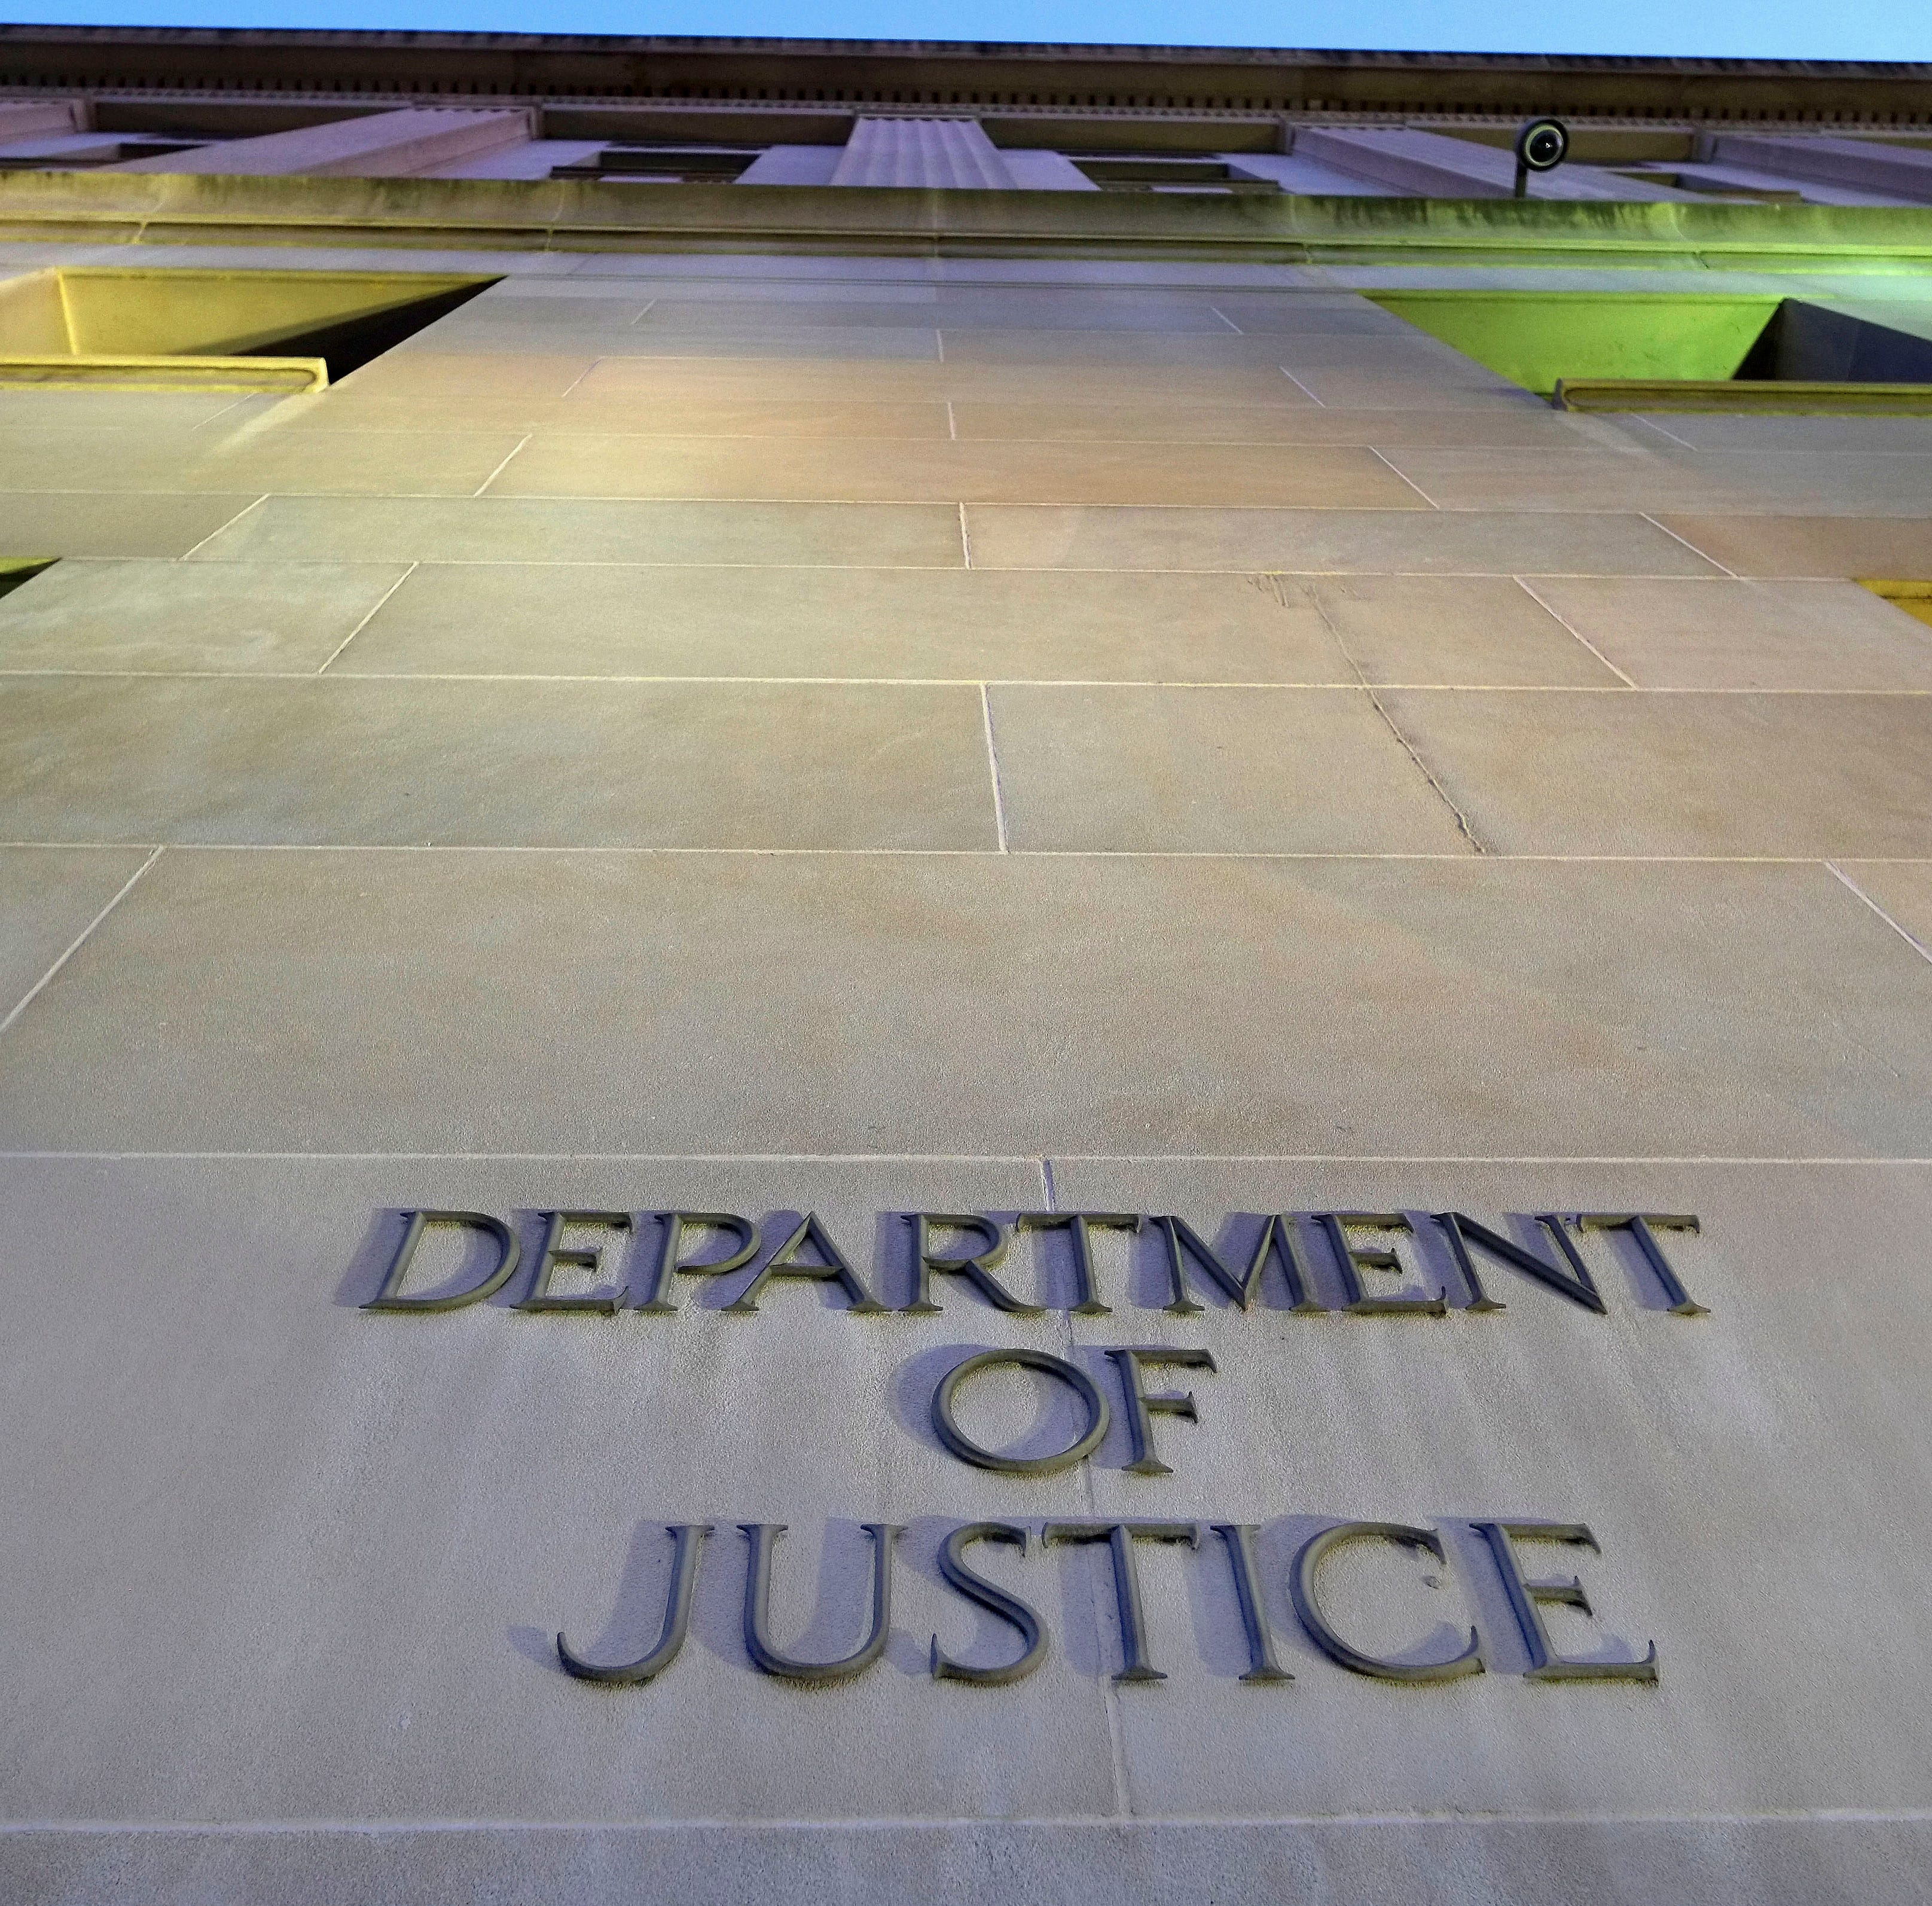 The Department of Justice headquarters building in Washington is photographed early May 14, 2013.